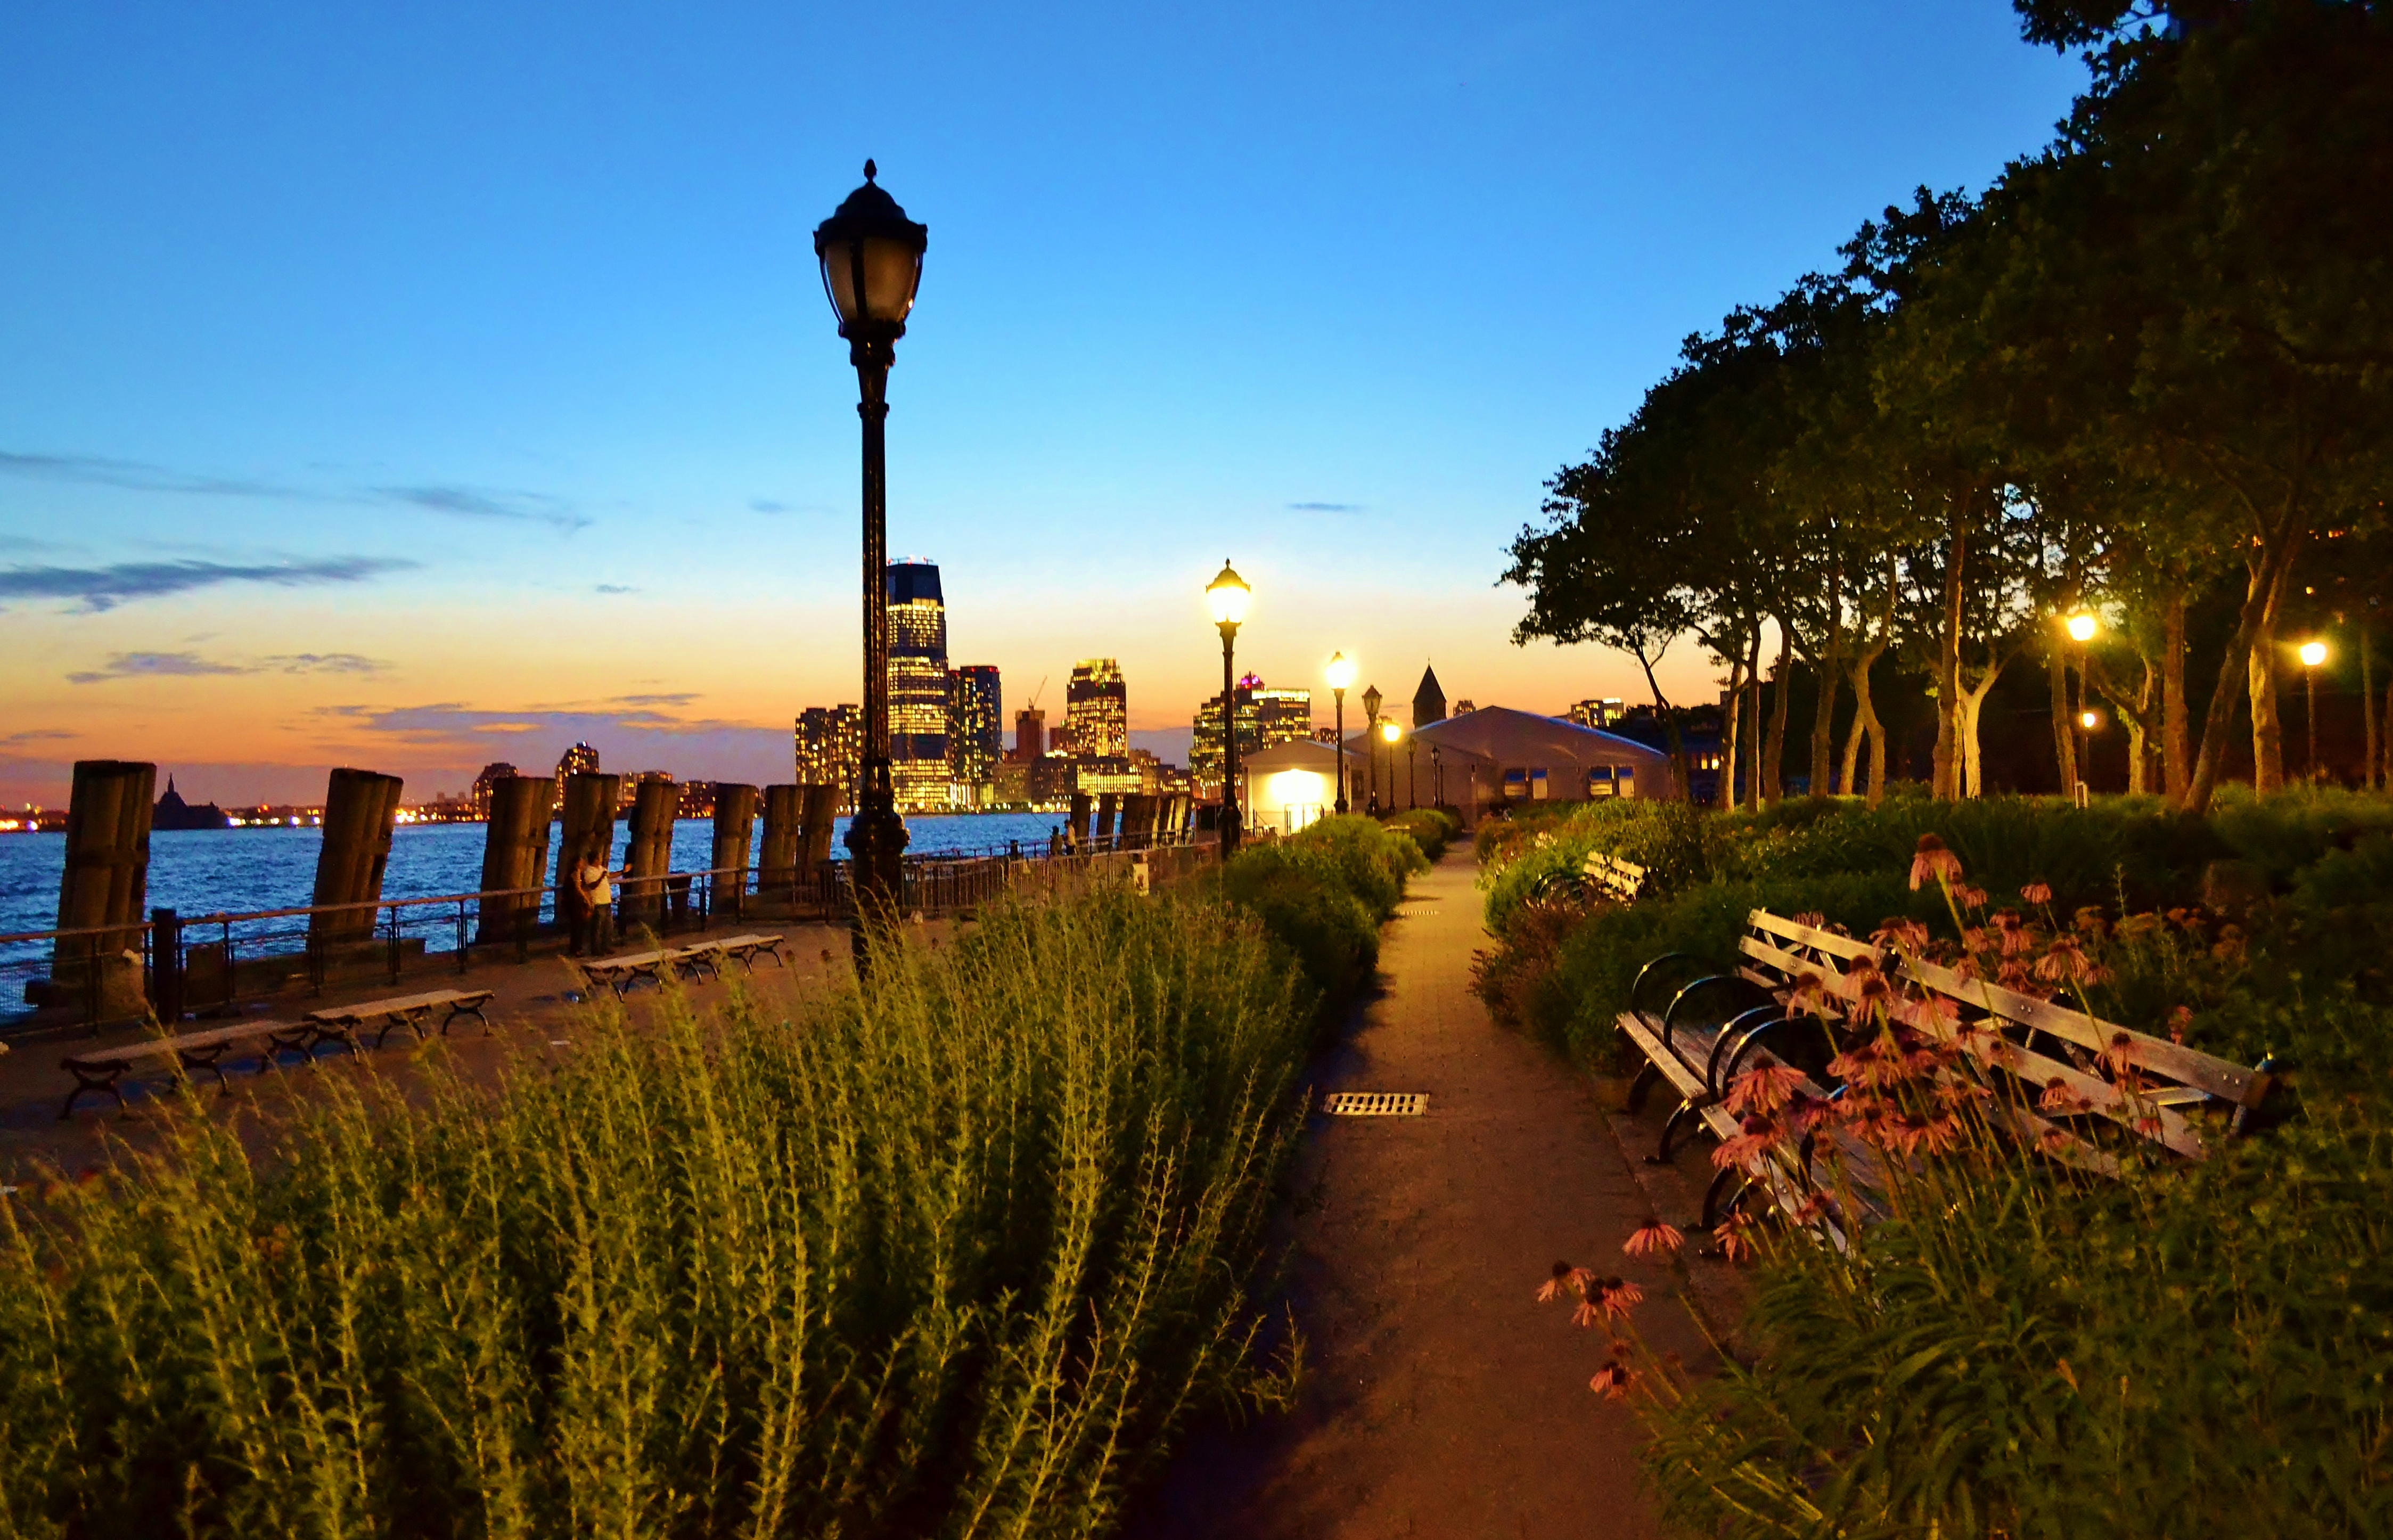 Battery Park - Urban Park in New York City - Thousand Wonders